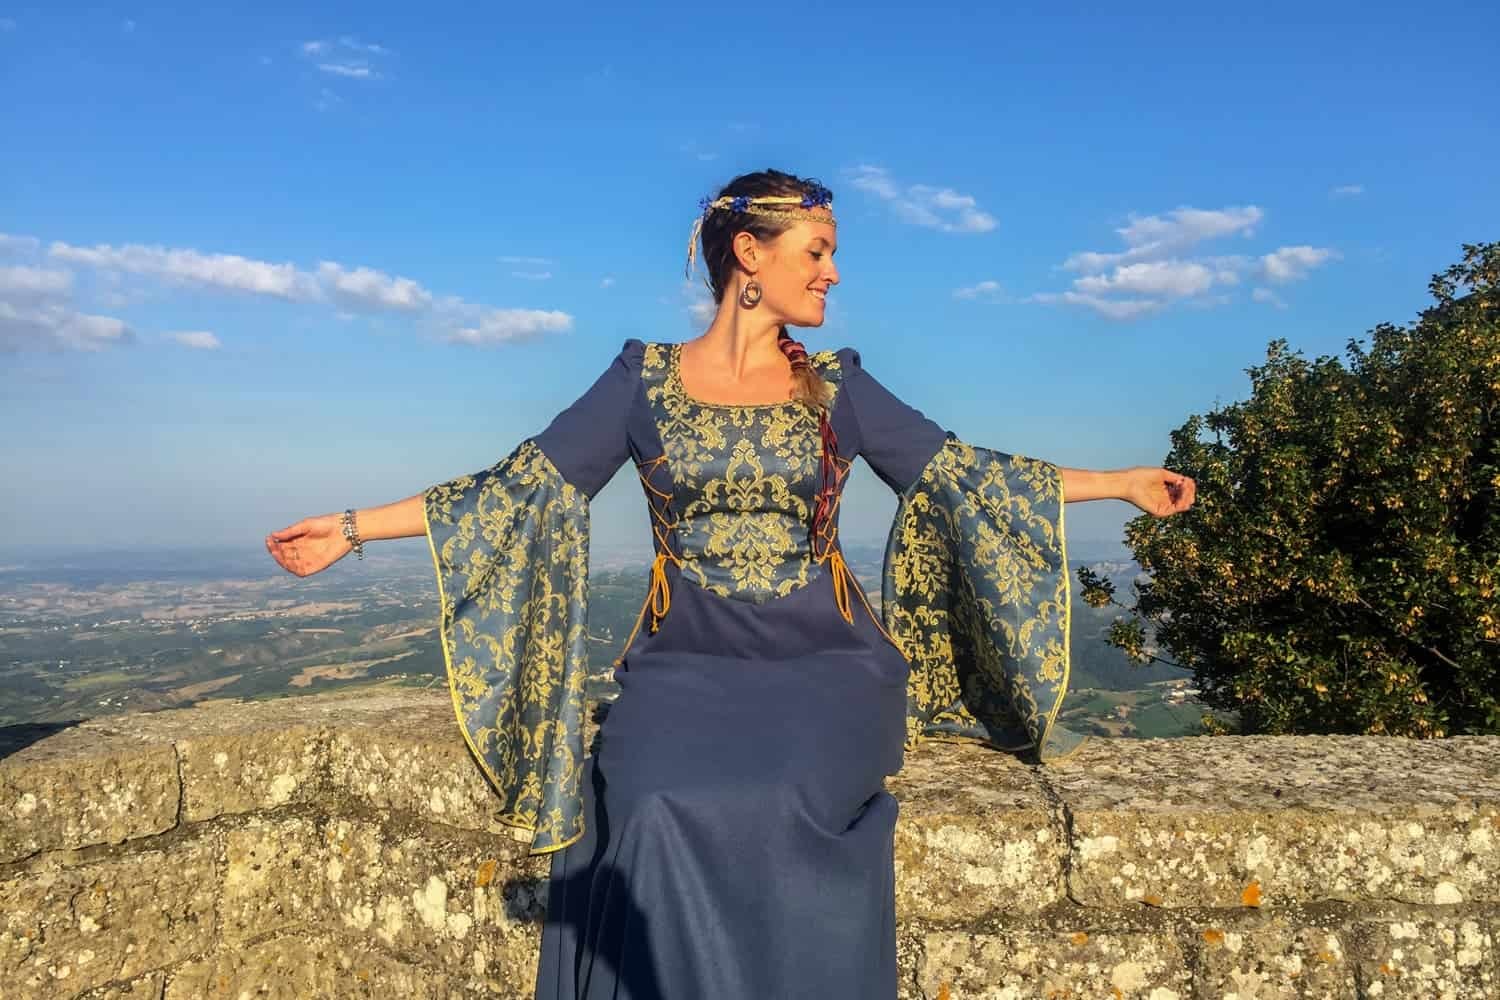 Medieval Festival in San Marino, Medieval Days costume